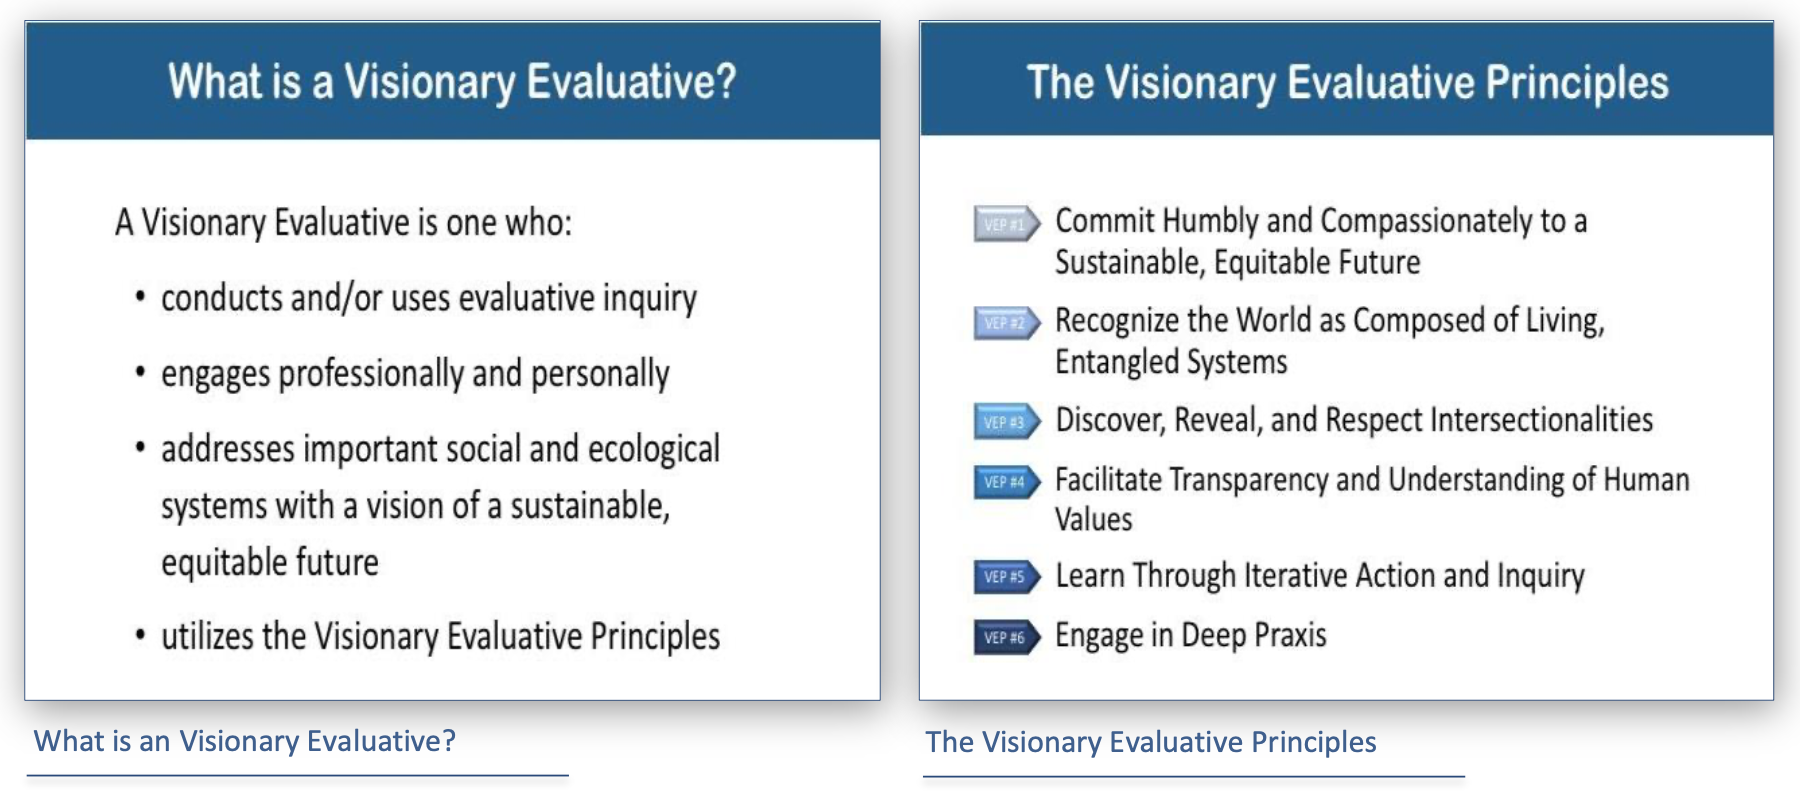 s a Visionary Evaluative? and The Visionary Evaluative Principles bullet points